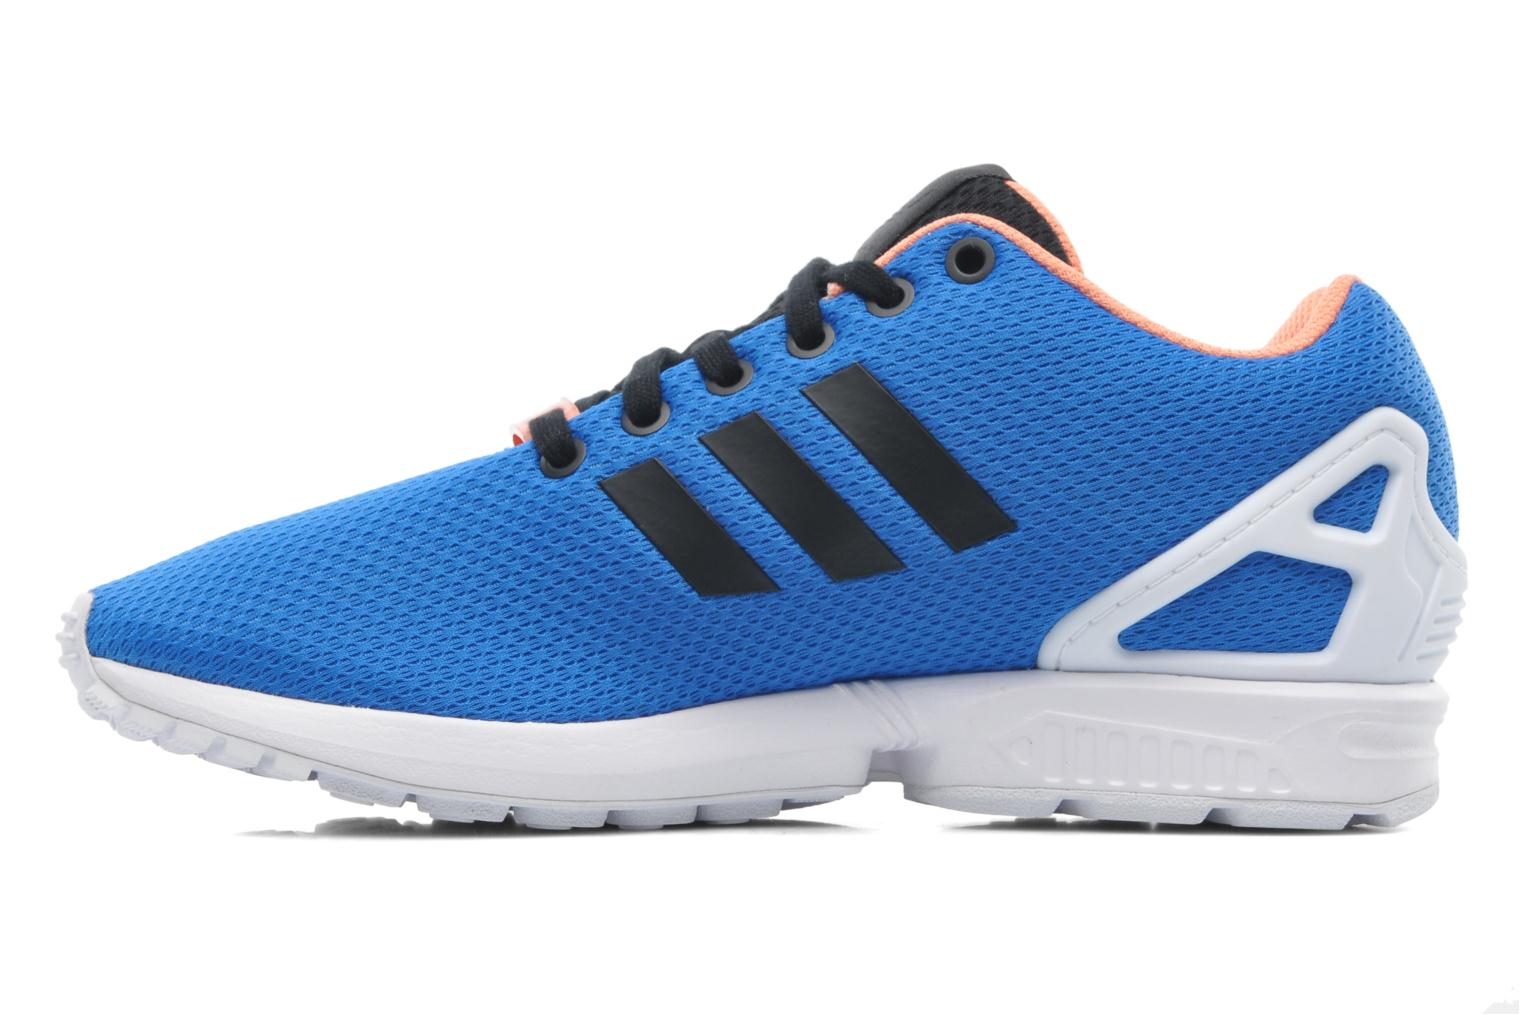 sports shoes 097f7 ed63a Nouveau Adidas Zx Flux Homme Grossiste Tang598